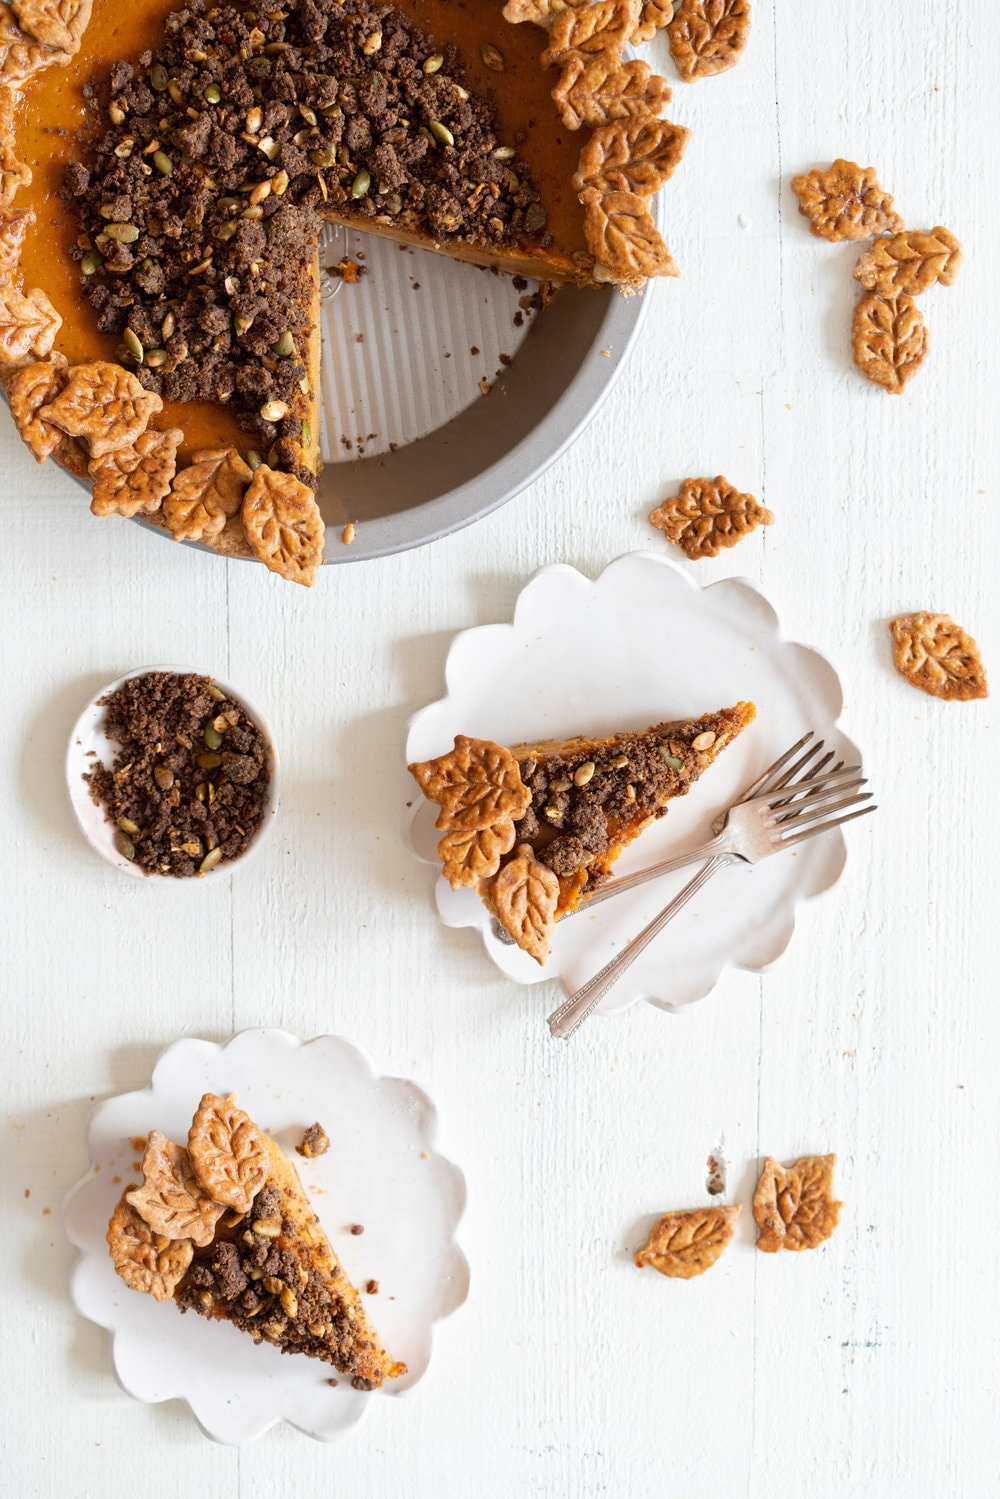 Buttermilk Pumpkin Streusel Pie from Lisa Ludwinski's new book, Sister Pie. Tangy buttermilk filling is topped with a nutty buckwheat pepita filling - a simple but genius twist on the traditional pumpkin pie. #pumpkinpie #buttermilk #pie #streusel #sisterpie